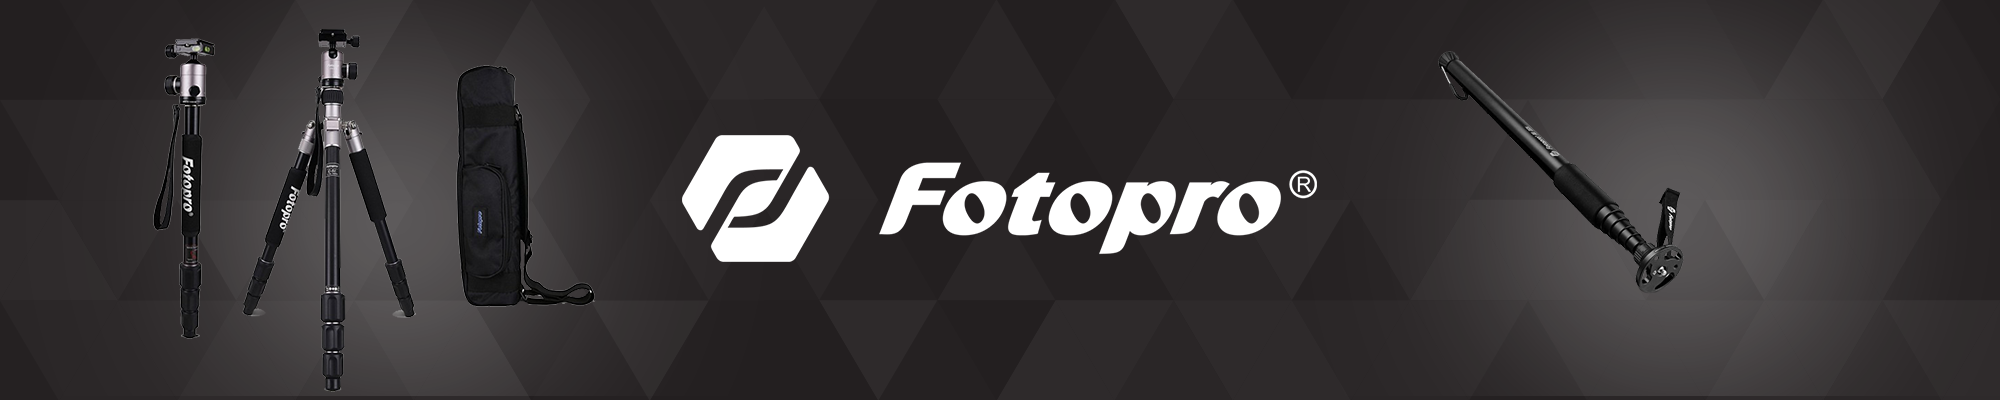 Fotopro Visuals E Shop Tripod C40i 53p Is An Award Winning Global Brand That Designs Manufactures And Markets A Wide Range Of Photographic Equipment For Professional Photographers